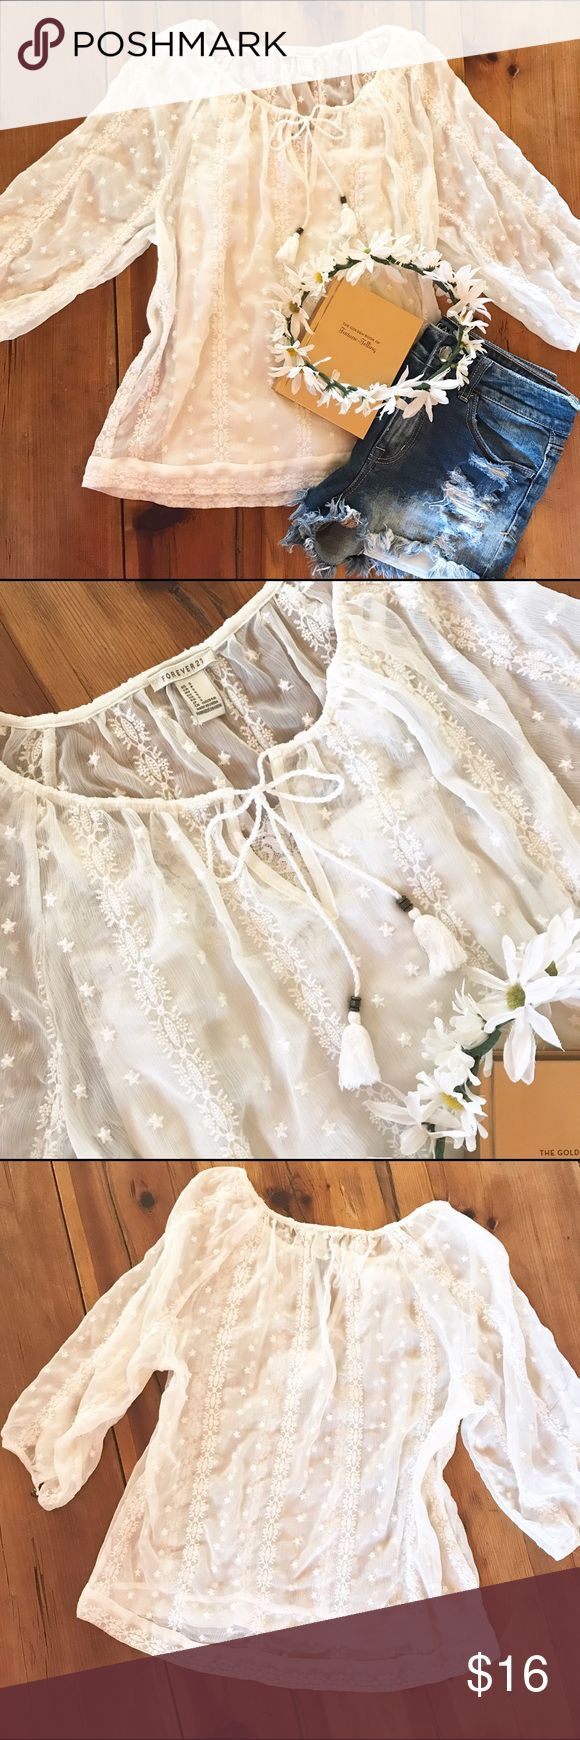 Top-Lacy, sheer, boho floral.  Shown with a cami. Cream colored lacy, sheer, boho floral top.  Shown with a cream cami underneath.  So pretty✨****Cami is NOT included. Forever 21 Tops Blouses